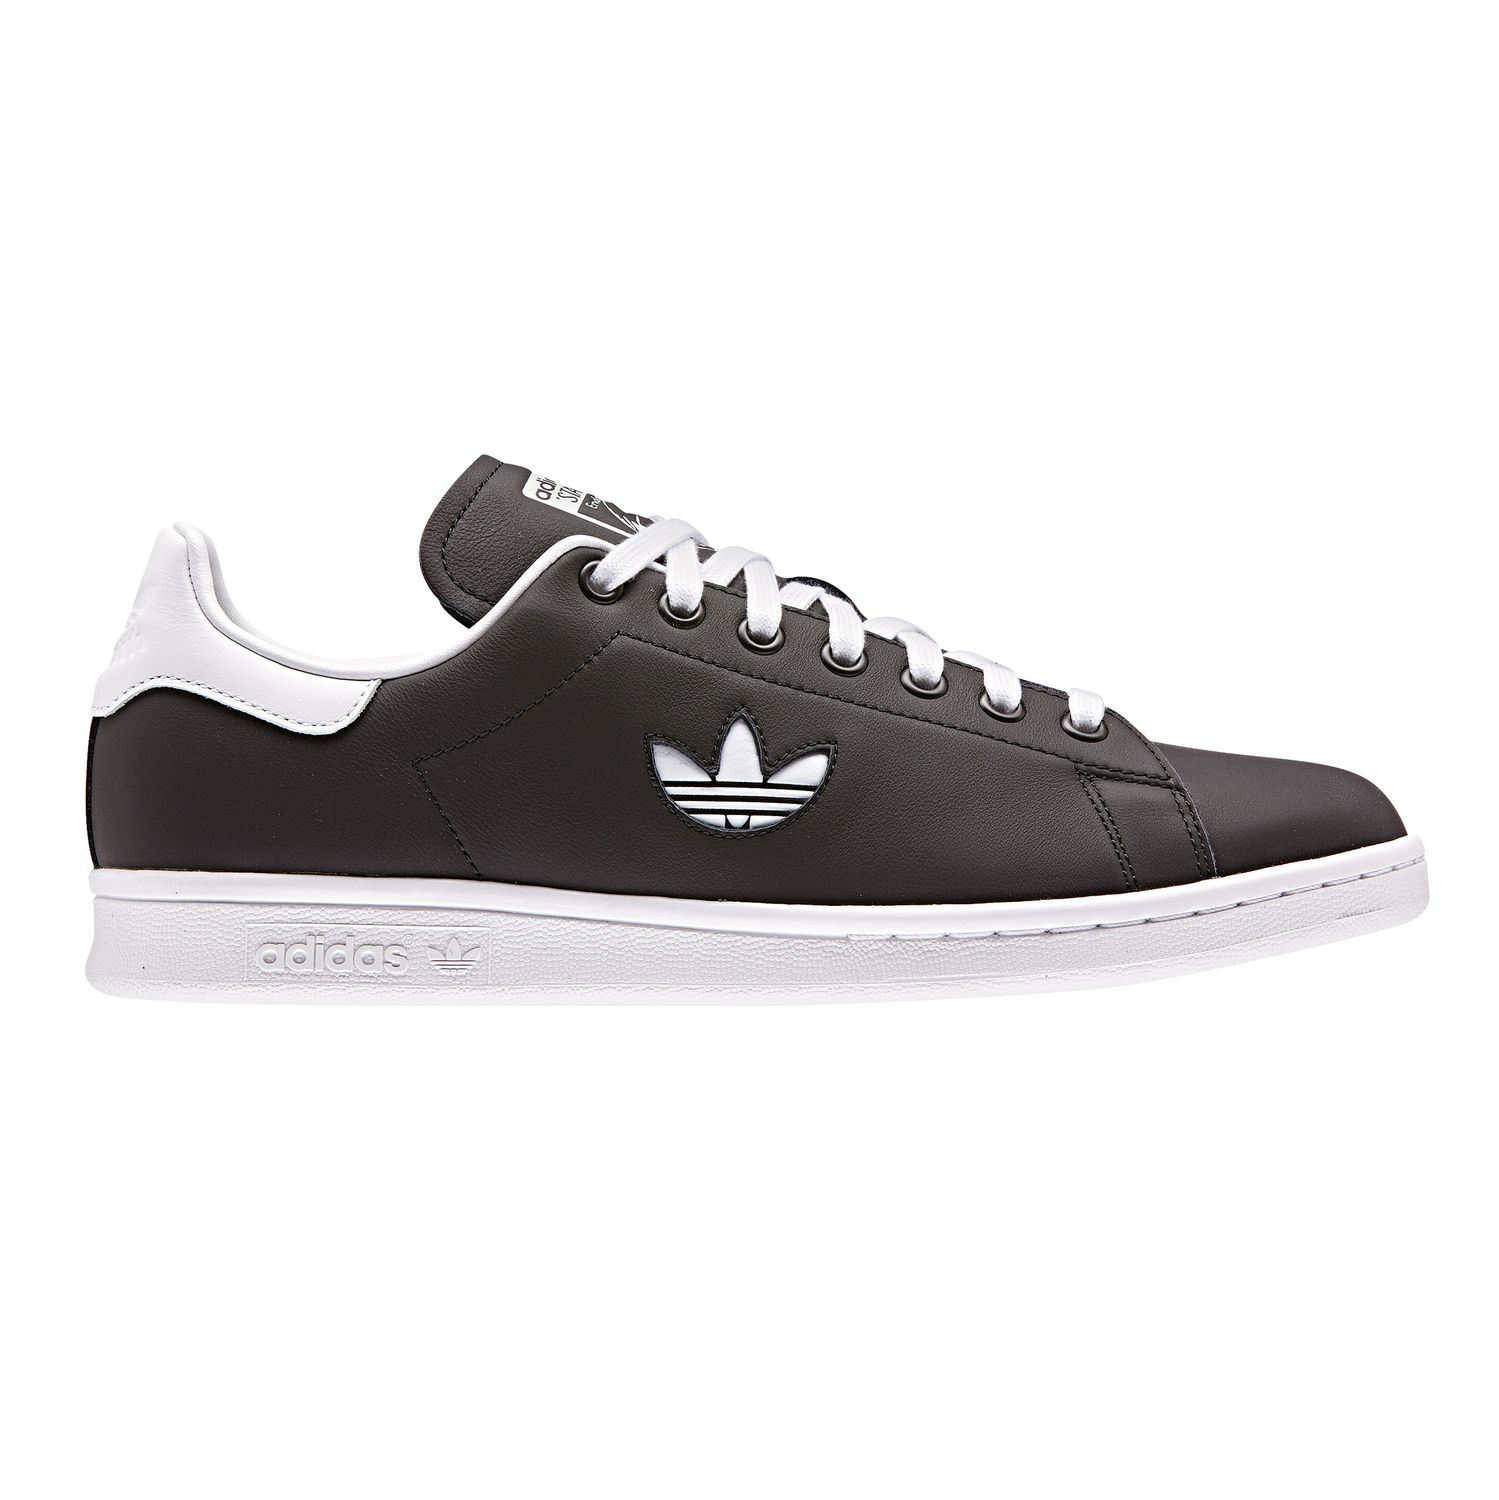 adidas Originals Stan Smith Herren Sneaker schwarz weiß BD7452